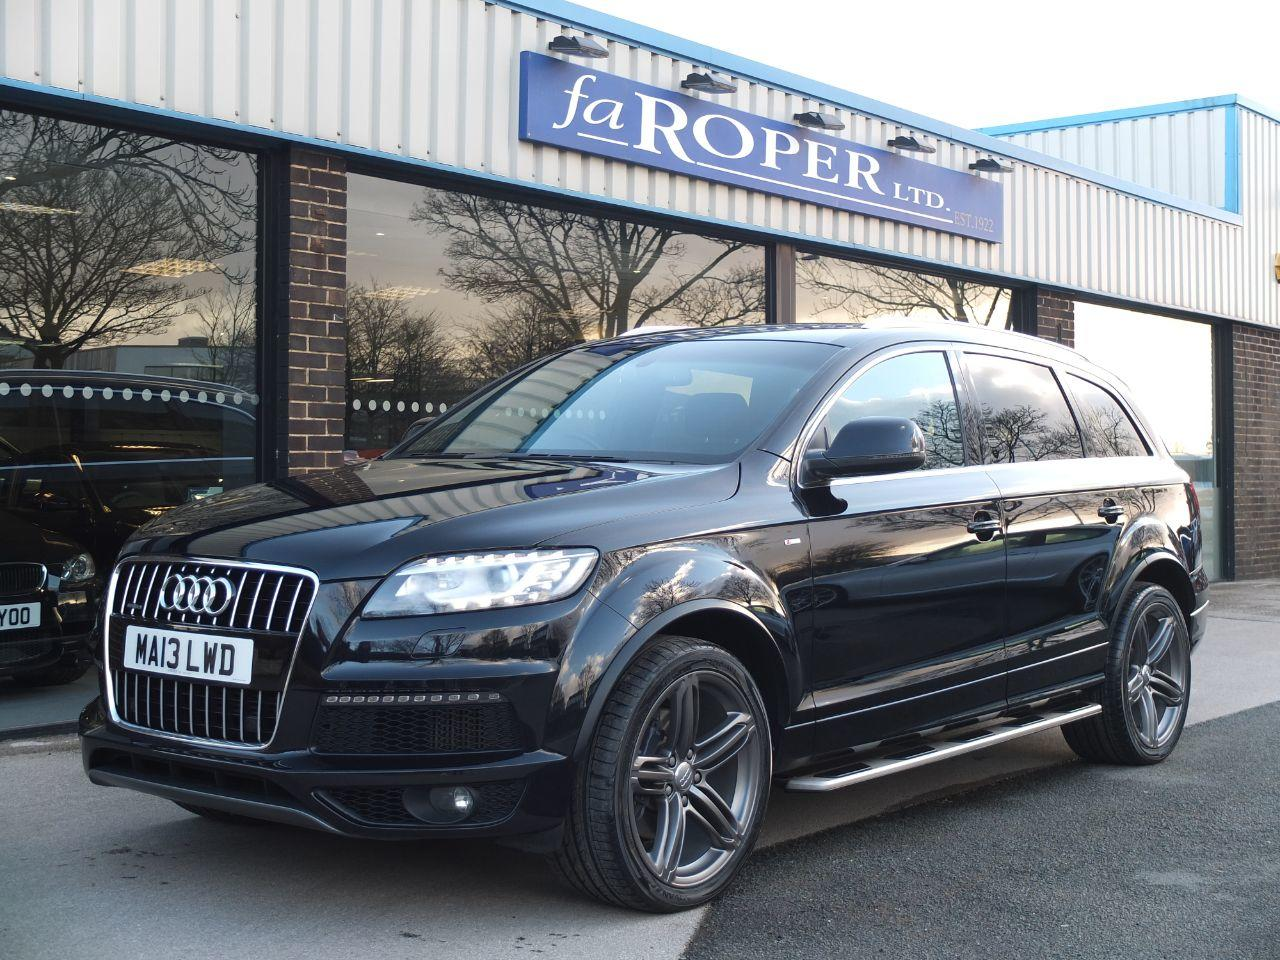 Audi Q7 3.0 TDI 245 Quattro S Line Plus Tip Auto Estate Diesel Orca Black MetallicAudi Q7 3.0 TDI 245 Quattro S Line Plus Tip Auto Estate Diesel Orca Black Metallic at fa Roper Ltd Bradford